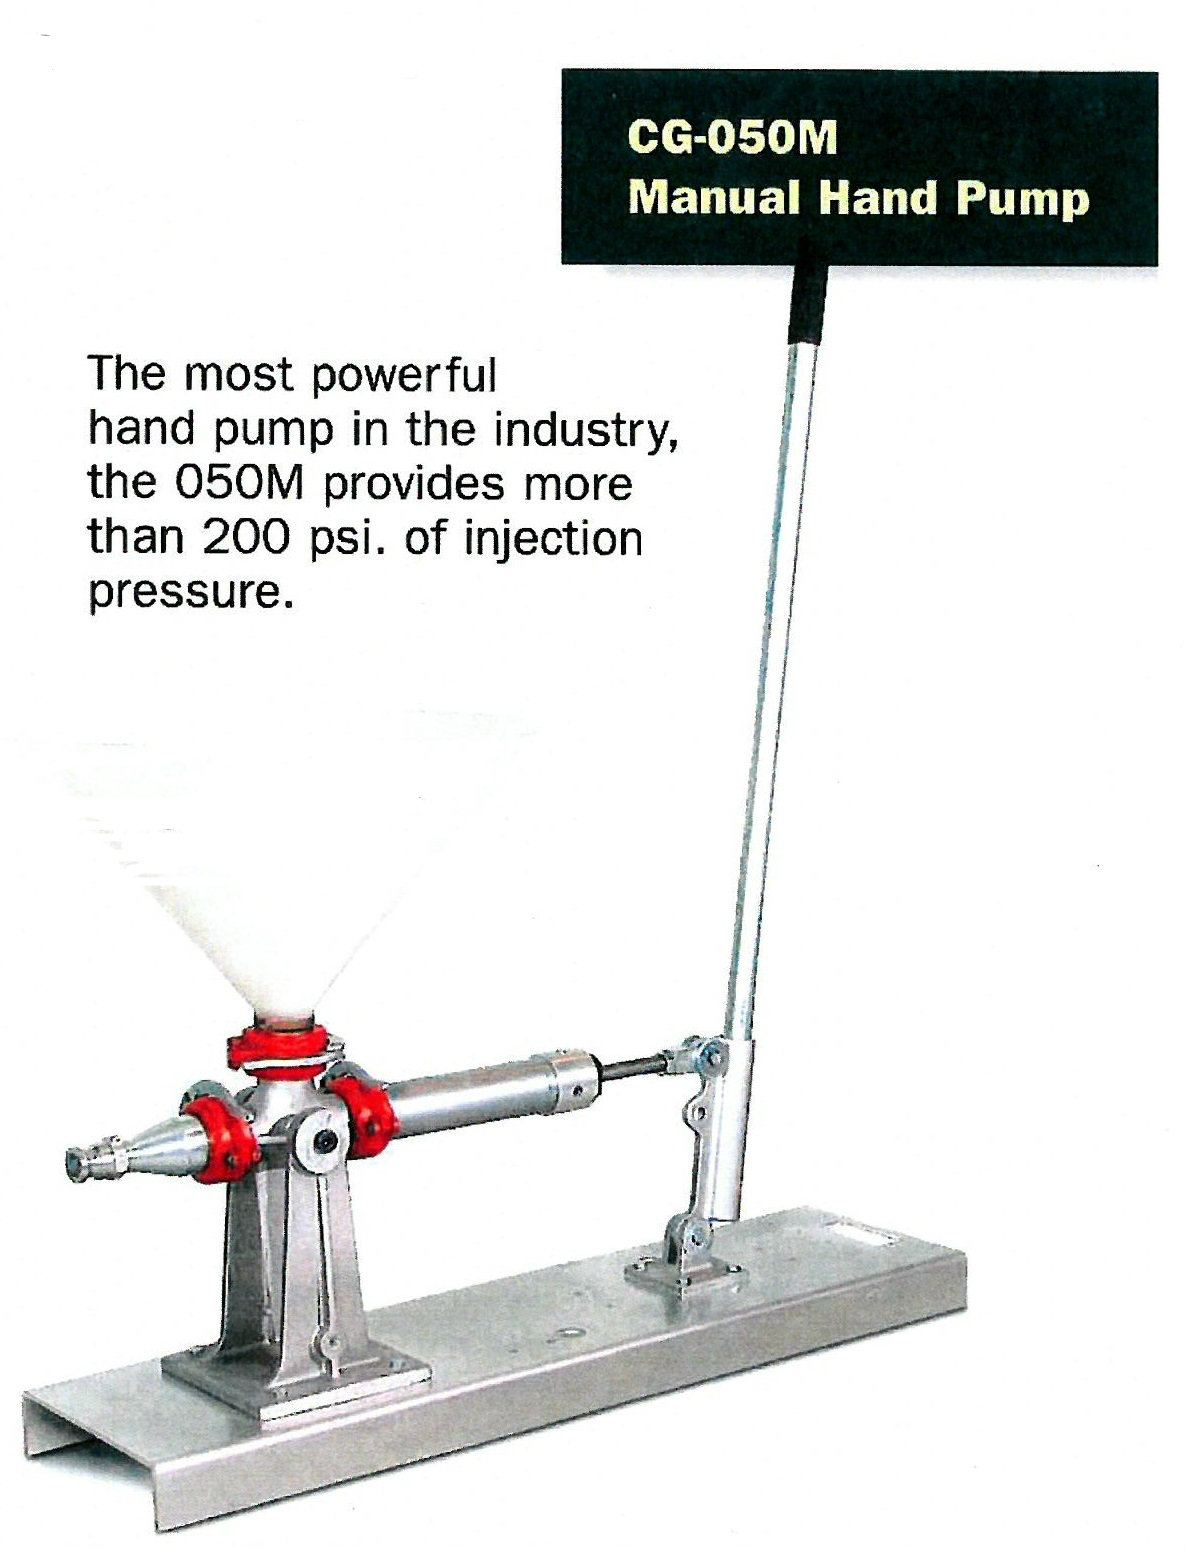 Manual HandPump (CLICK-IN FOR DETAILS)